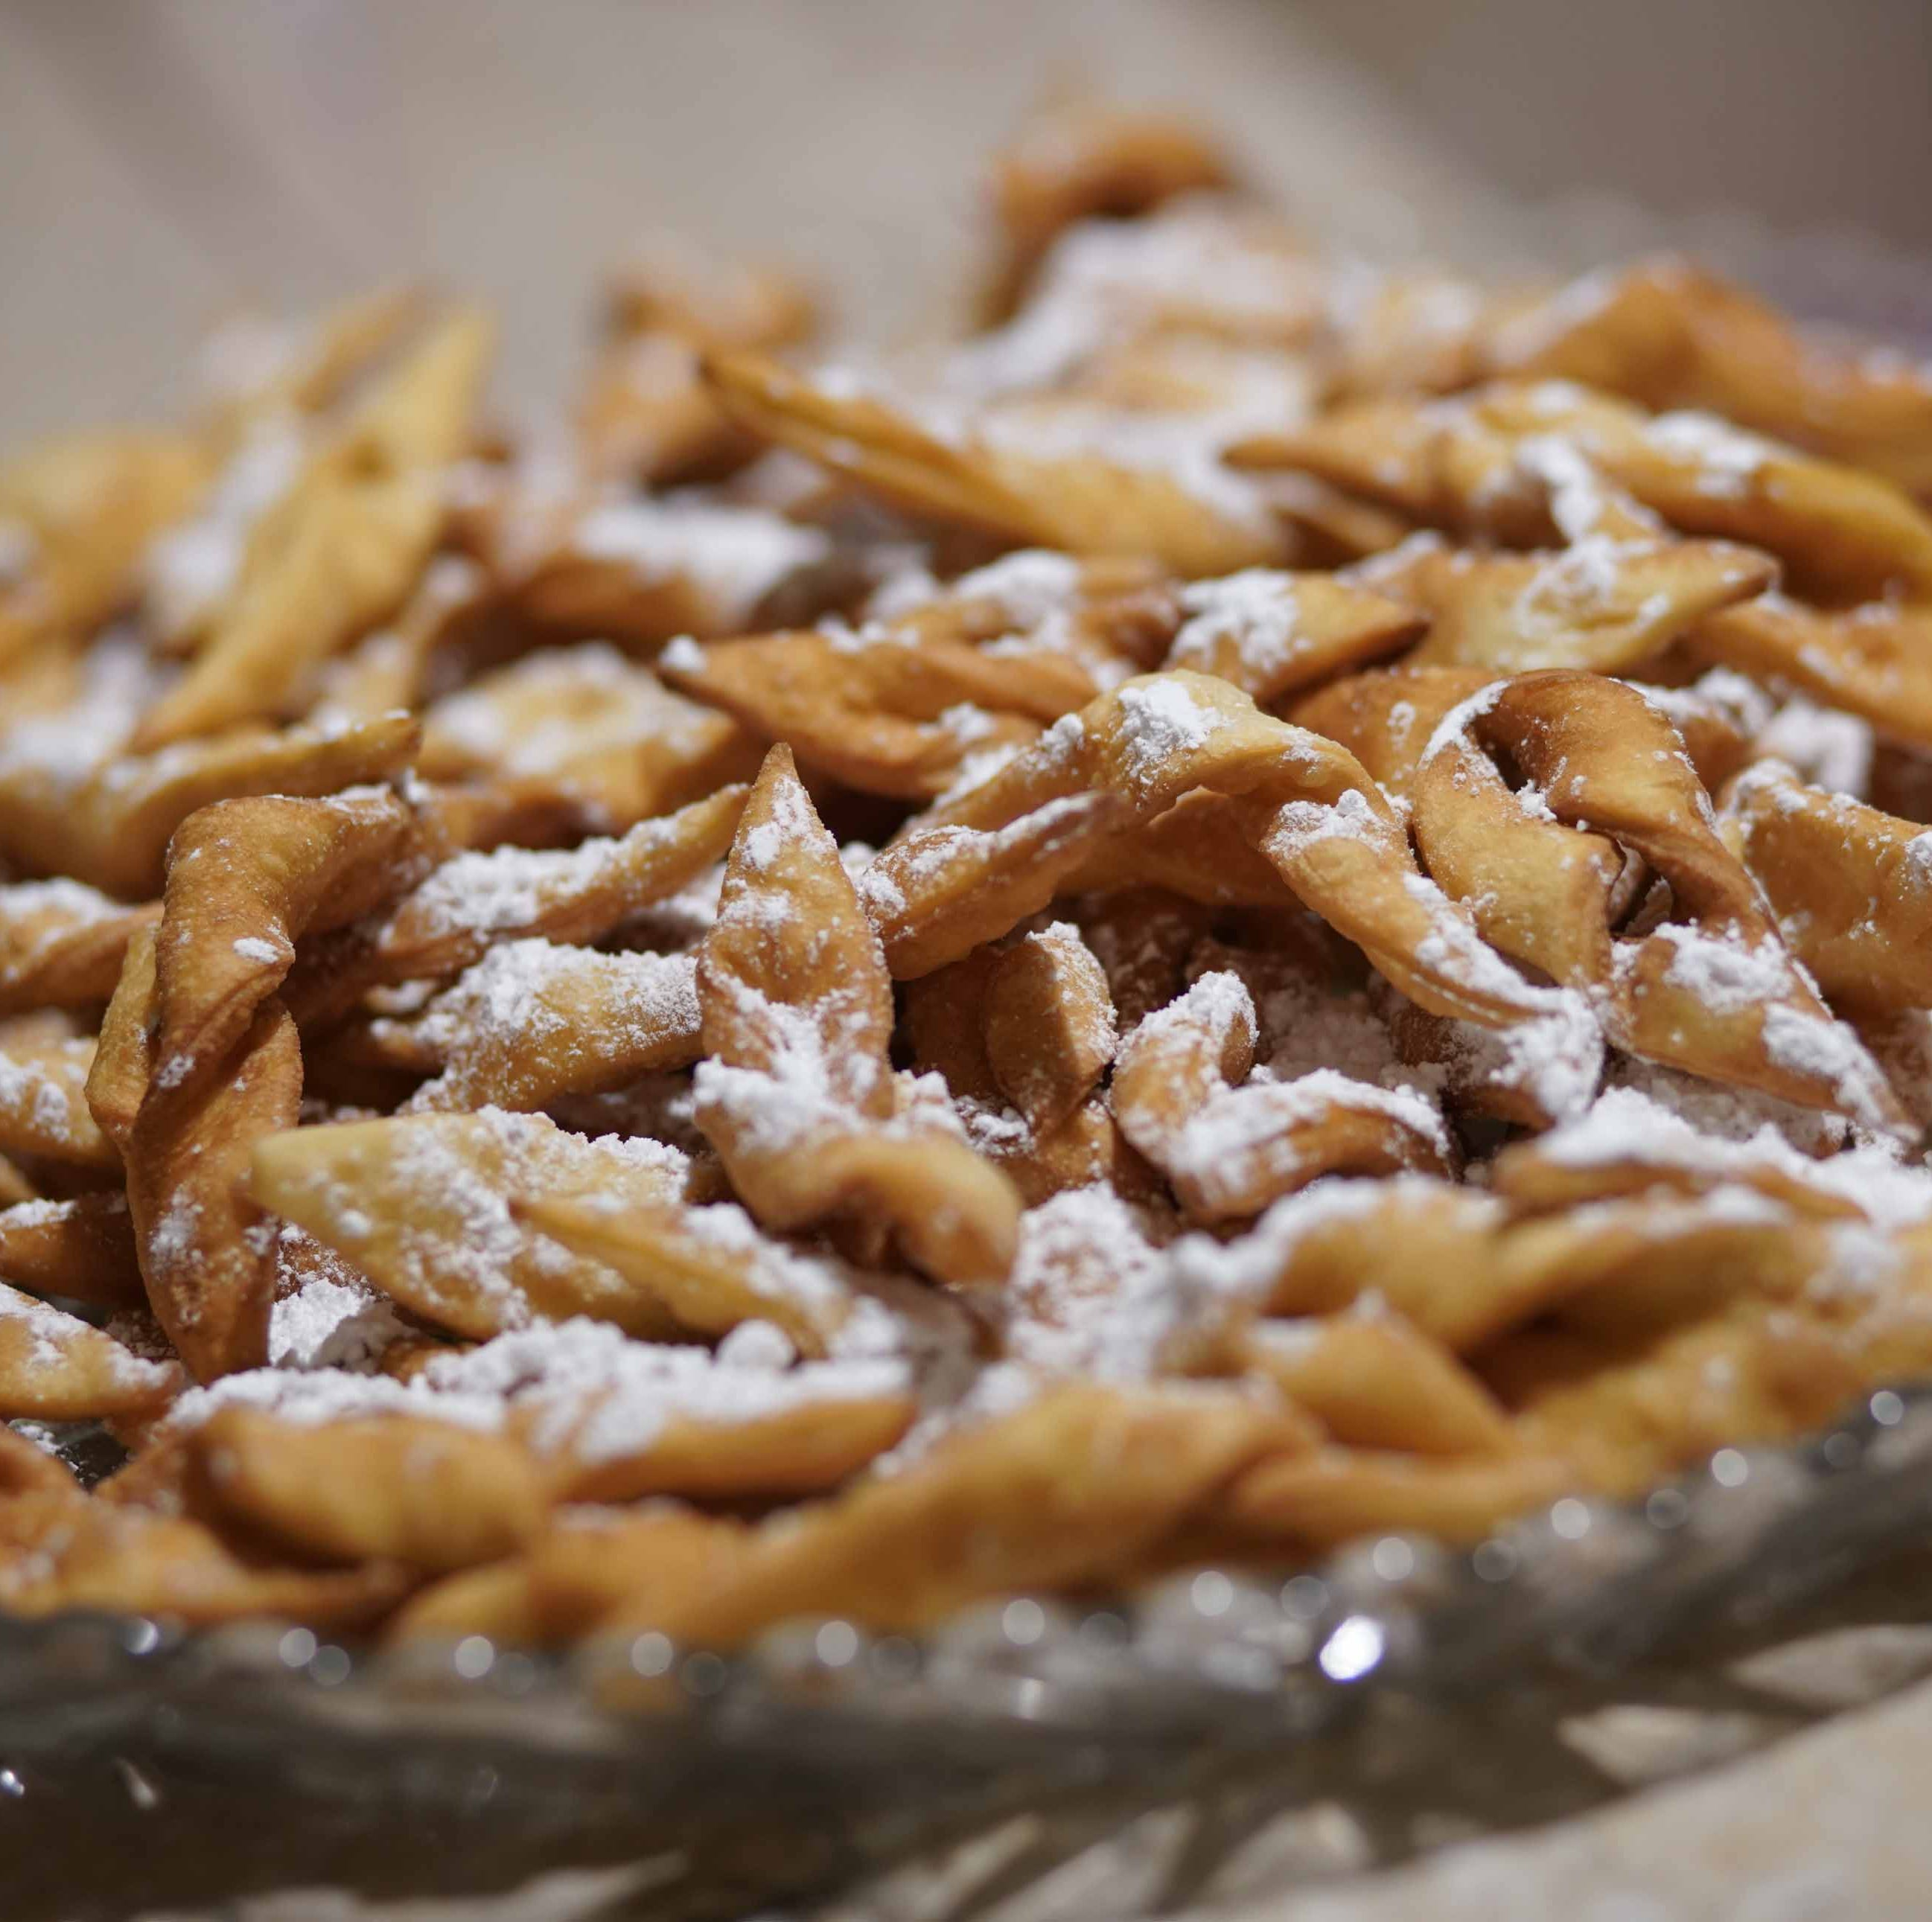 Fried cookies called chrusciki are St. Hedwig's tradition at Polish Festival